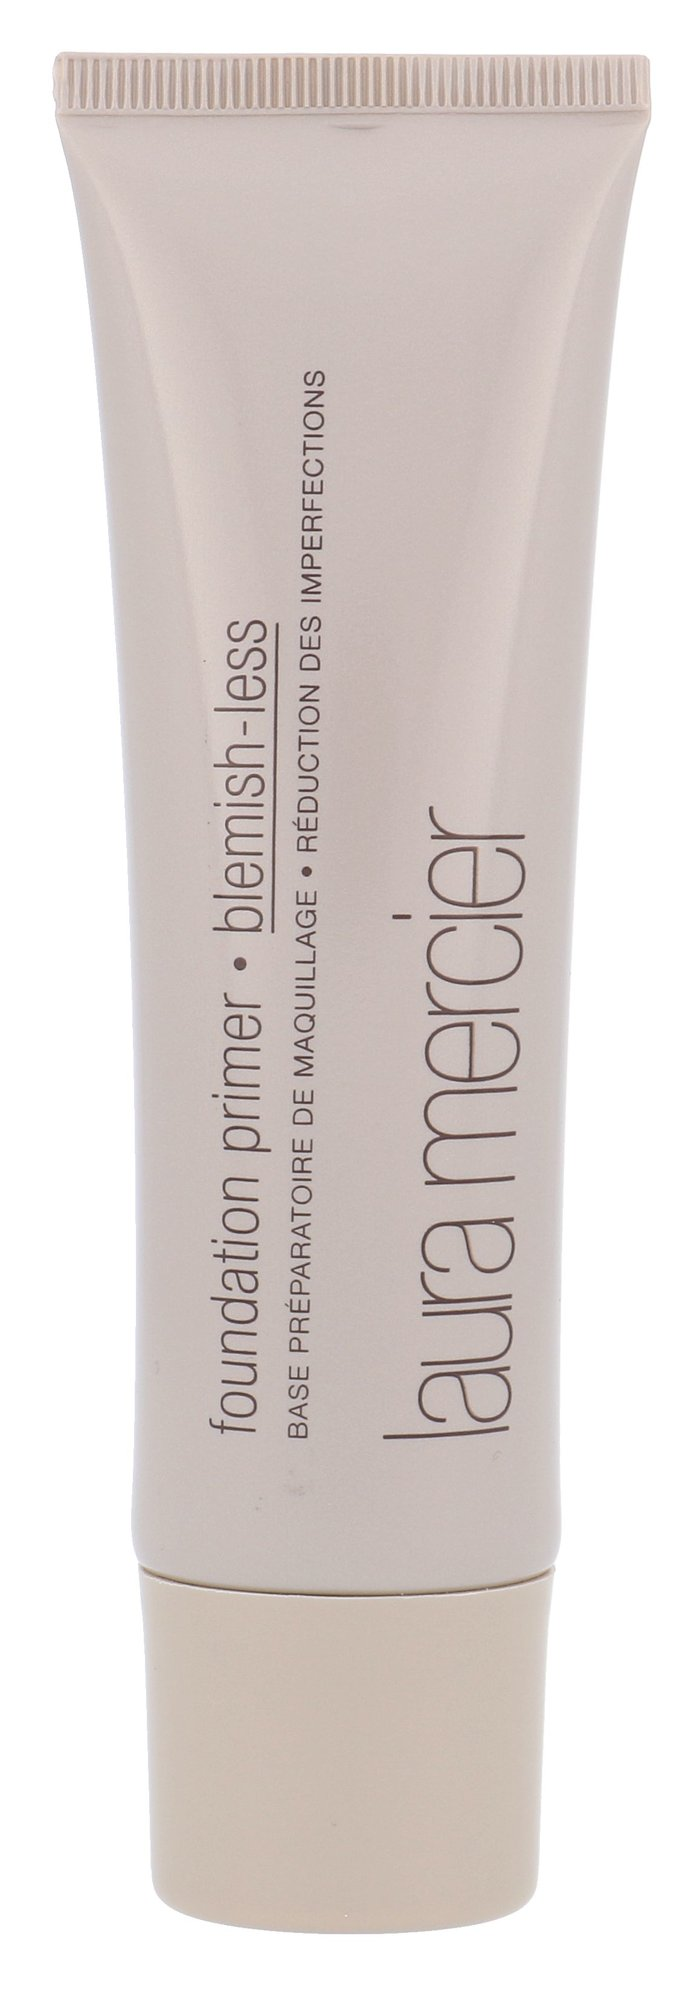 Laura Mercier Foundation Primer Cosmetic 50ml